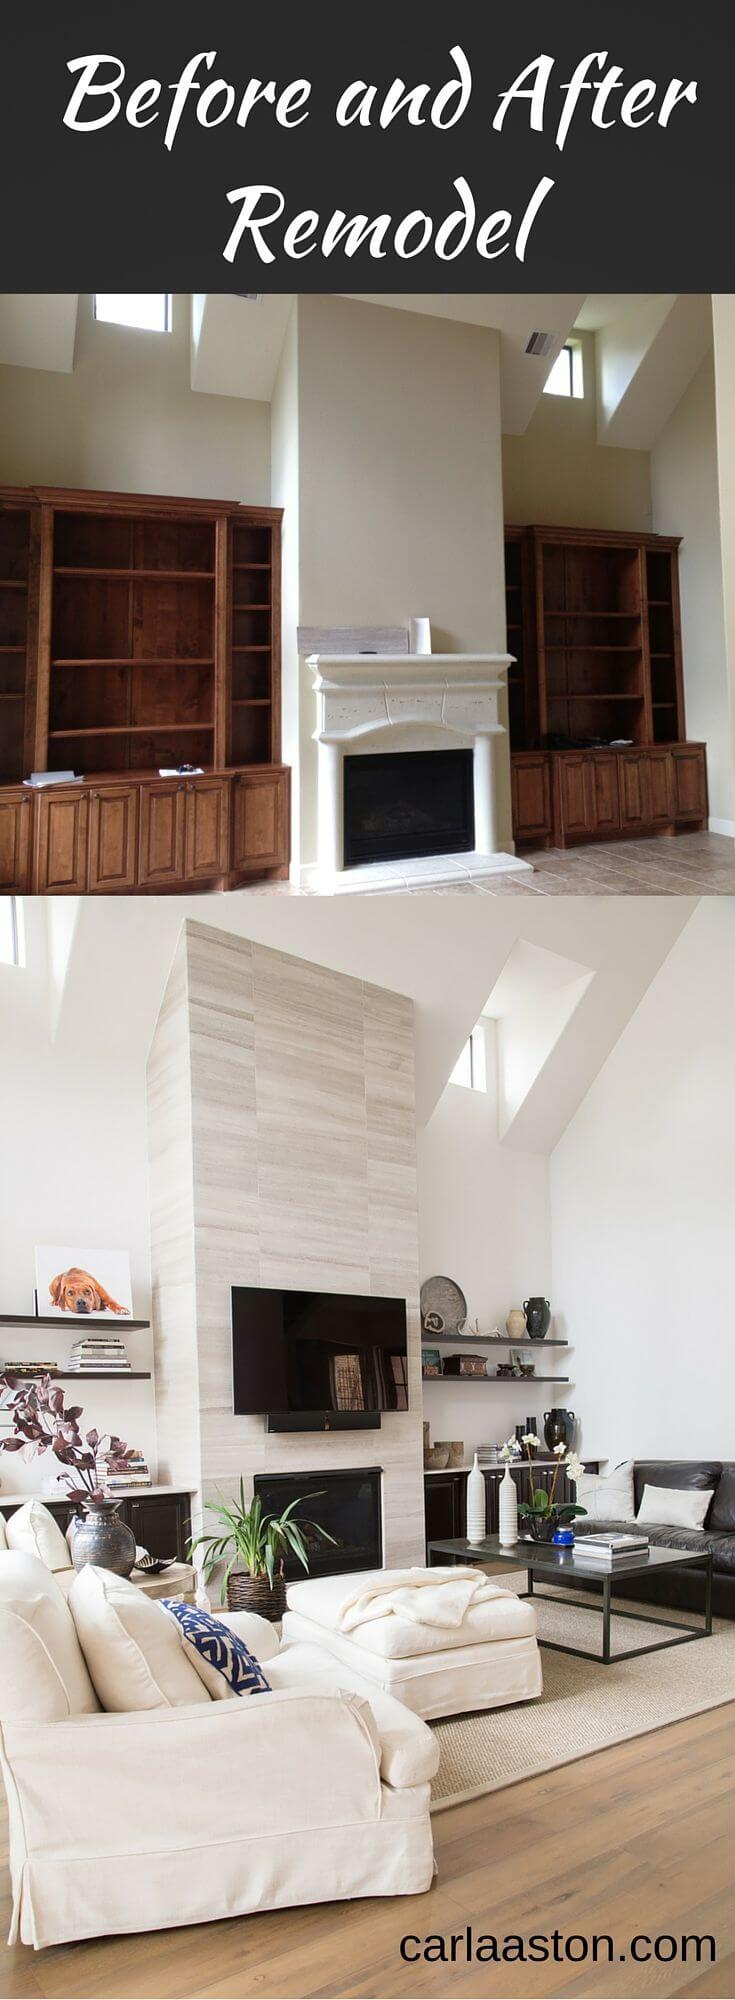 A Floor-to-Ceiling Living Room Remodel